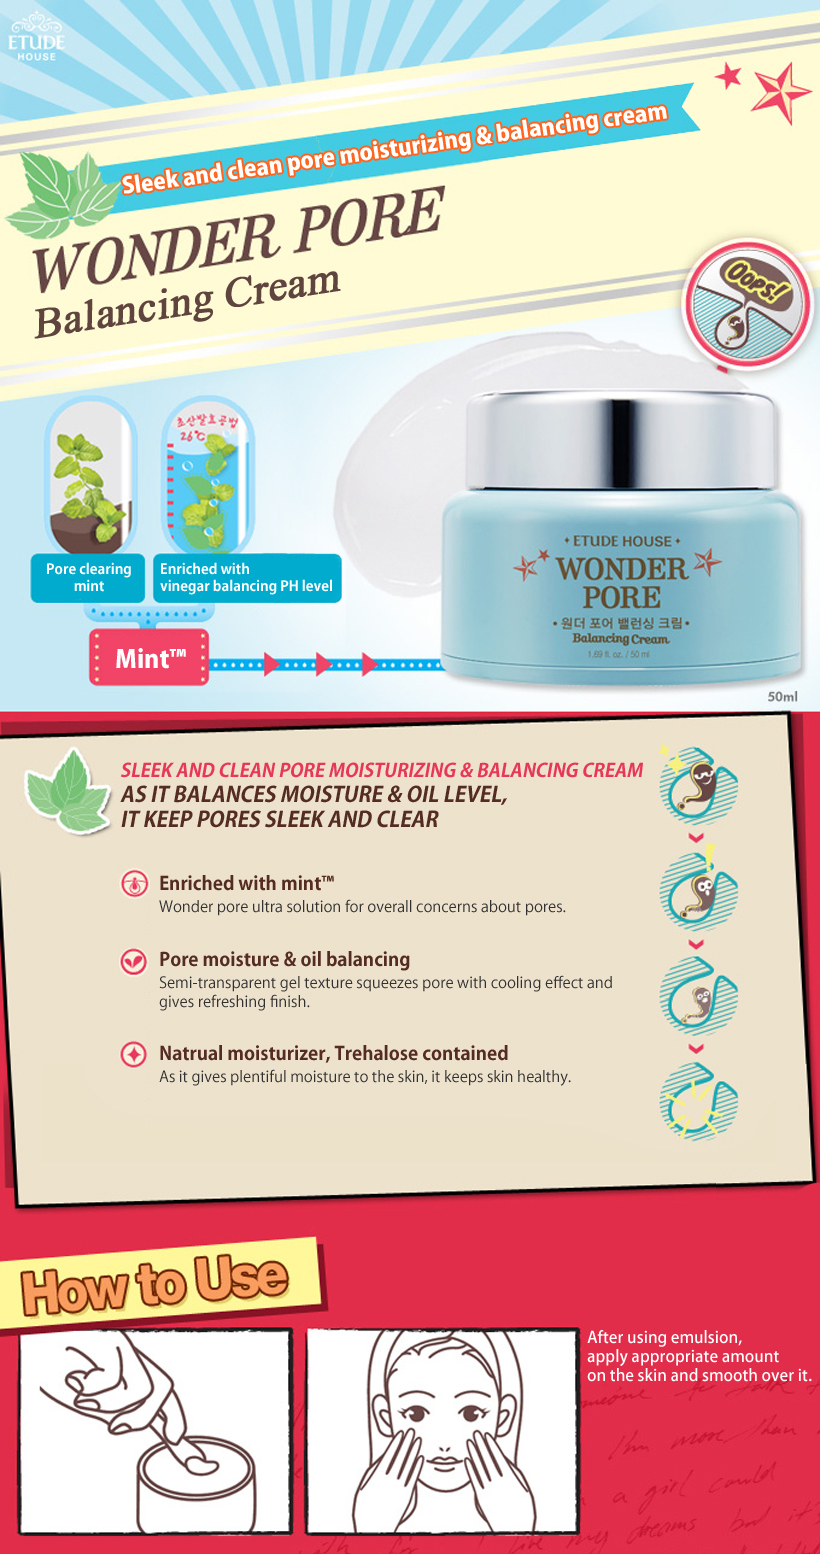 Wonder Pore Balancing Cream 50ml How to use Description Ingredients